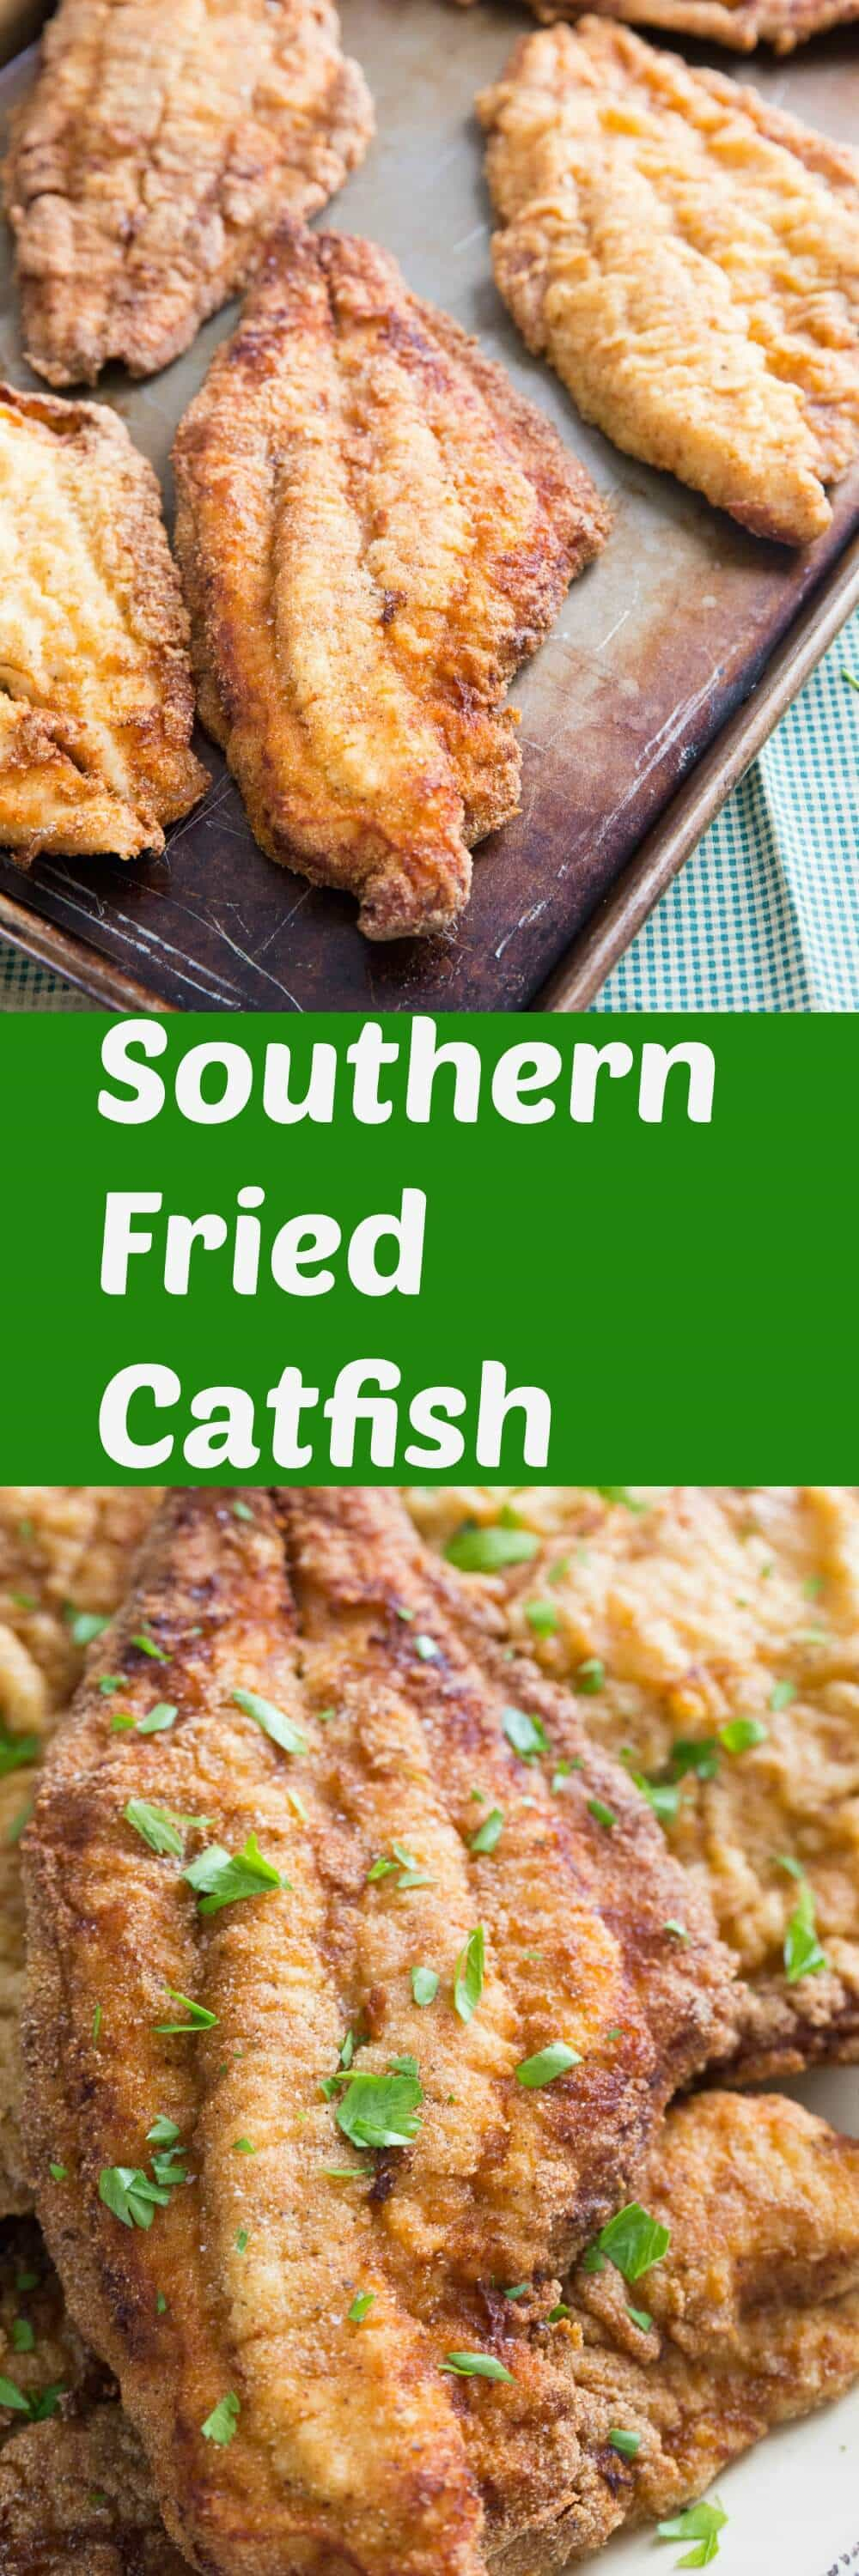 Who loves fried catfish? This southern fried catfish recipe meets all the requirements of a good catfish recipe! It is breaded for crispiness and has just the right amount of seasoning! You are going to love it!